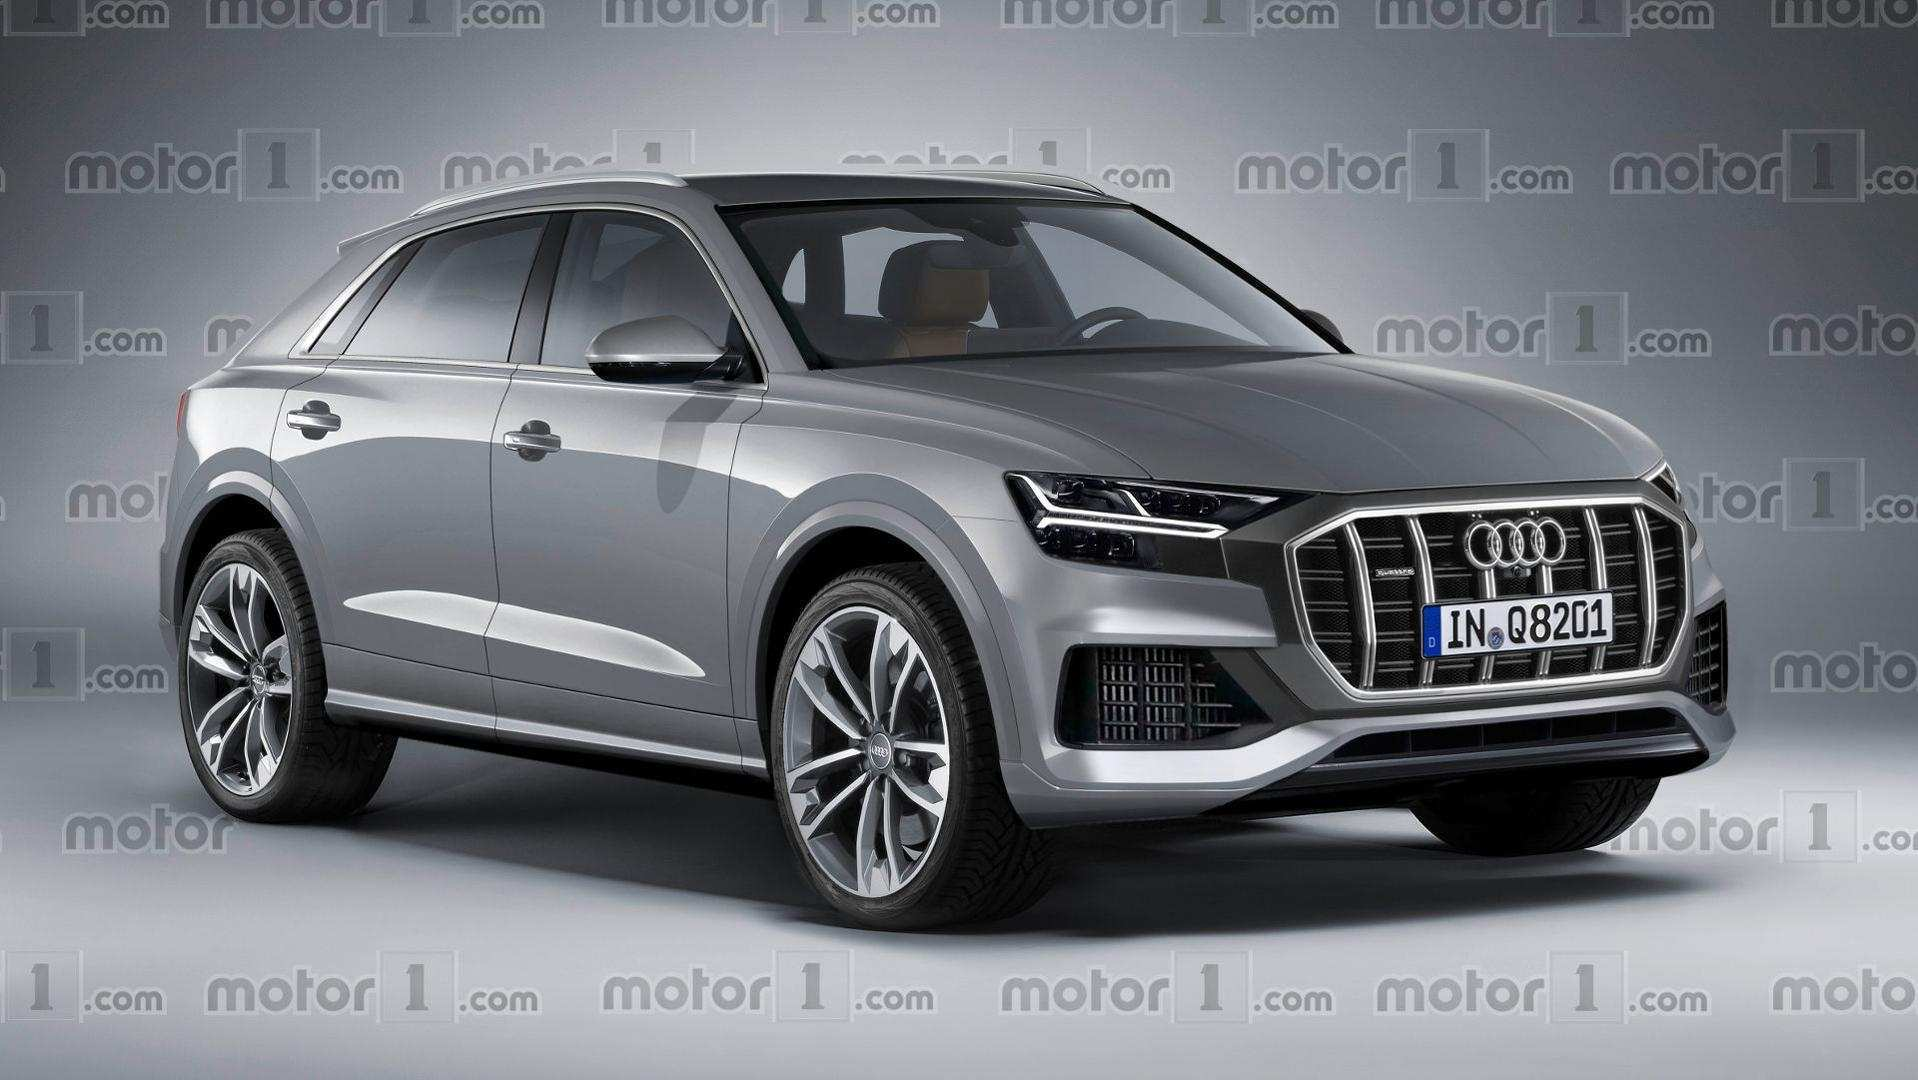 87 Concept of Best When Does Audi Release 2019 Models Review Specs And Release Date Speed Test with Best When Does Audi Release 2019 Models Review Specs And Release Date